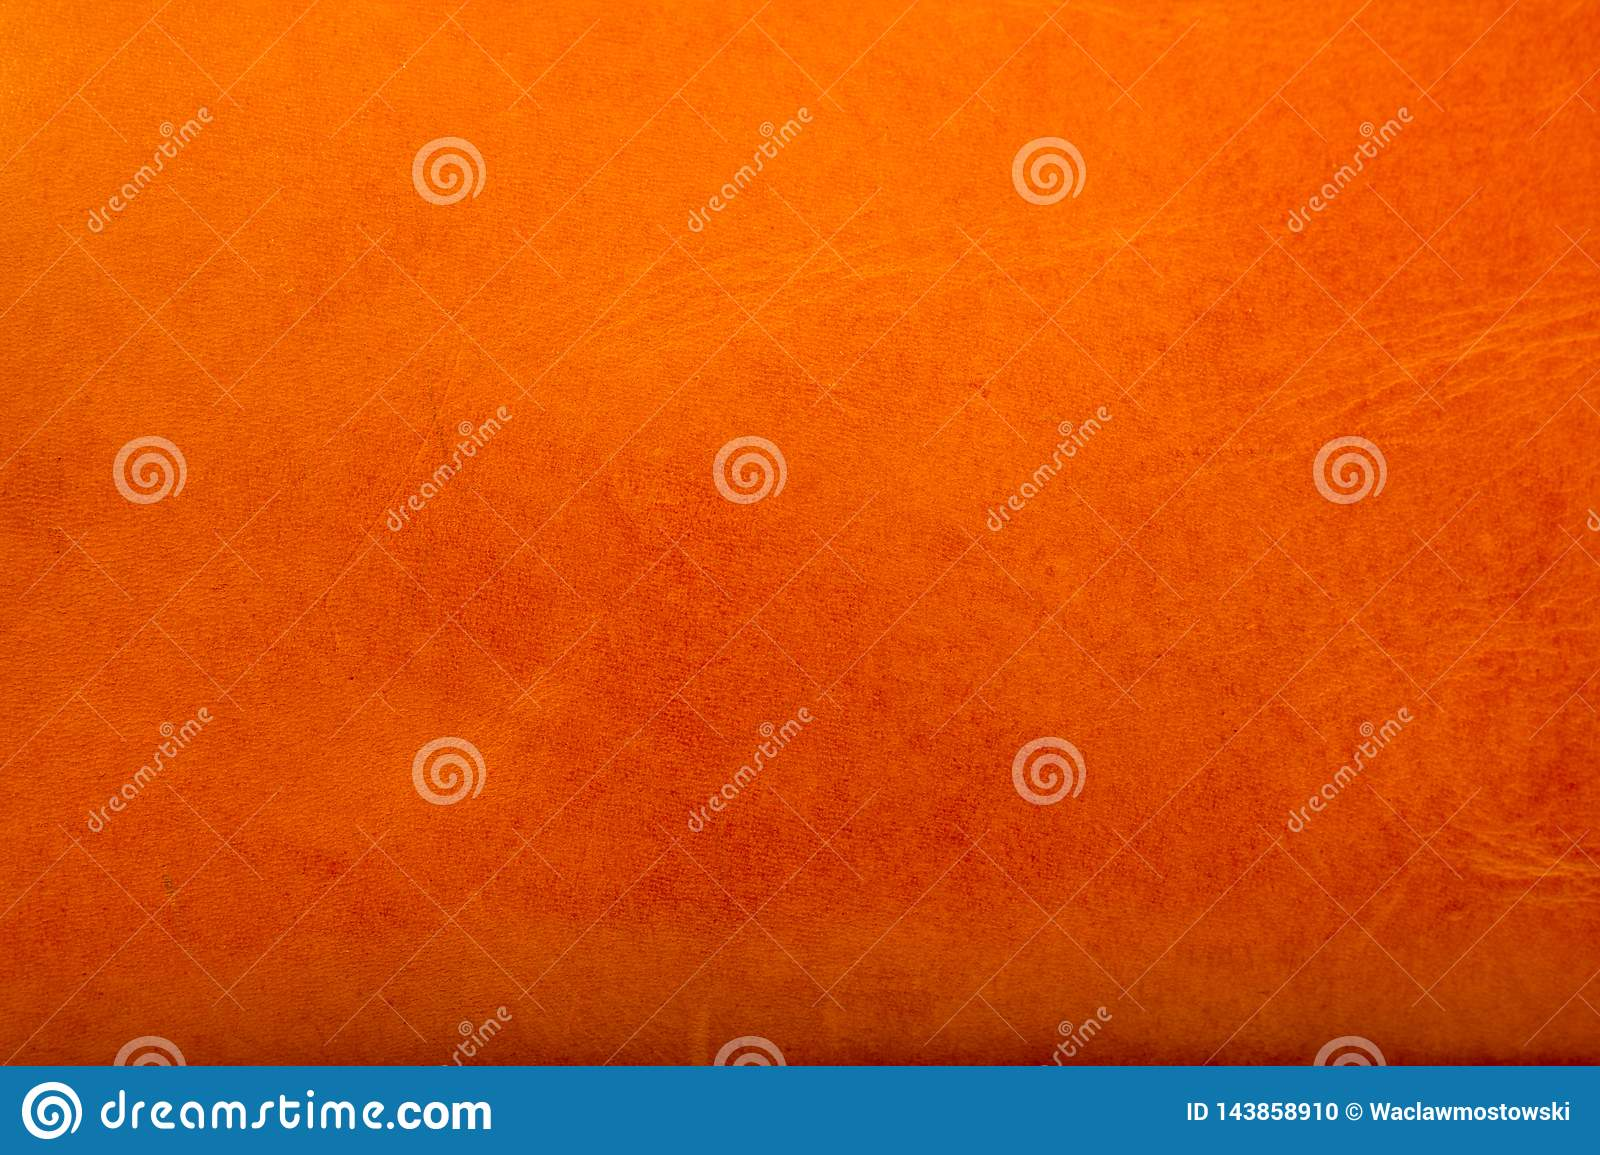 Vintage Brown Leather Texture Background Stock Photo